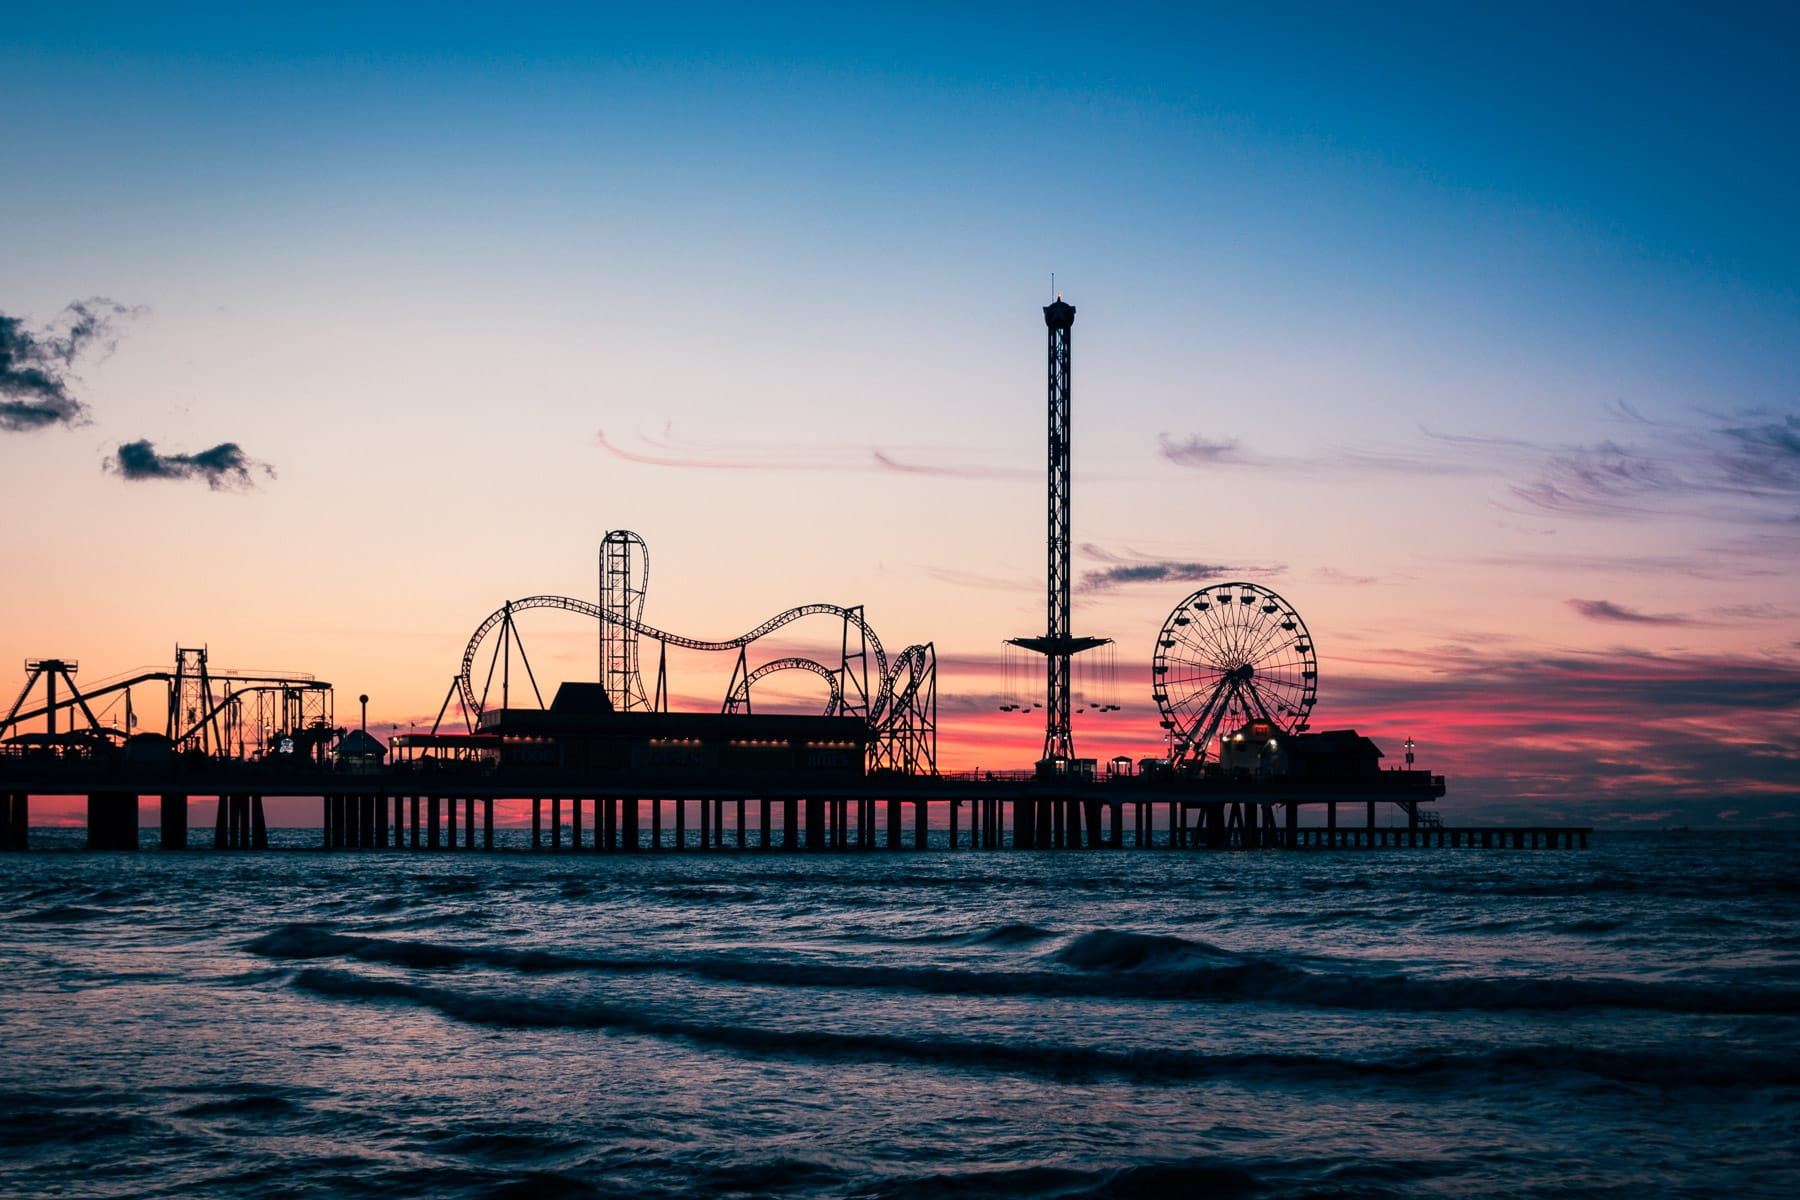 The Galveston Island Historic Pleasure Pier is silhouetted by the sunrise over the Gulf of Mexico.